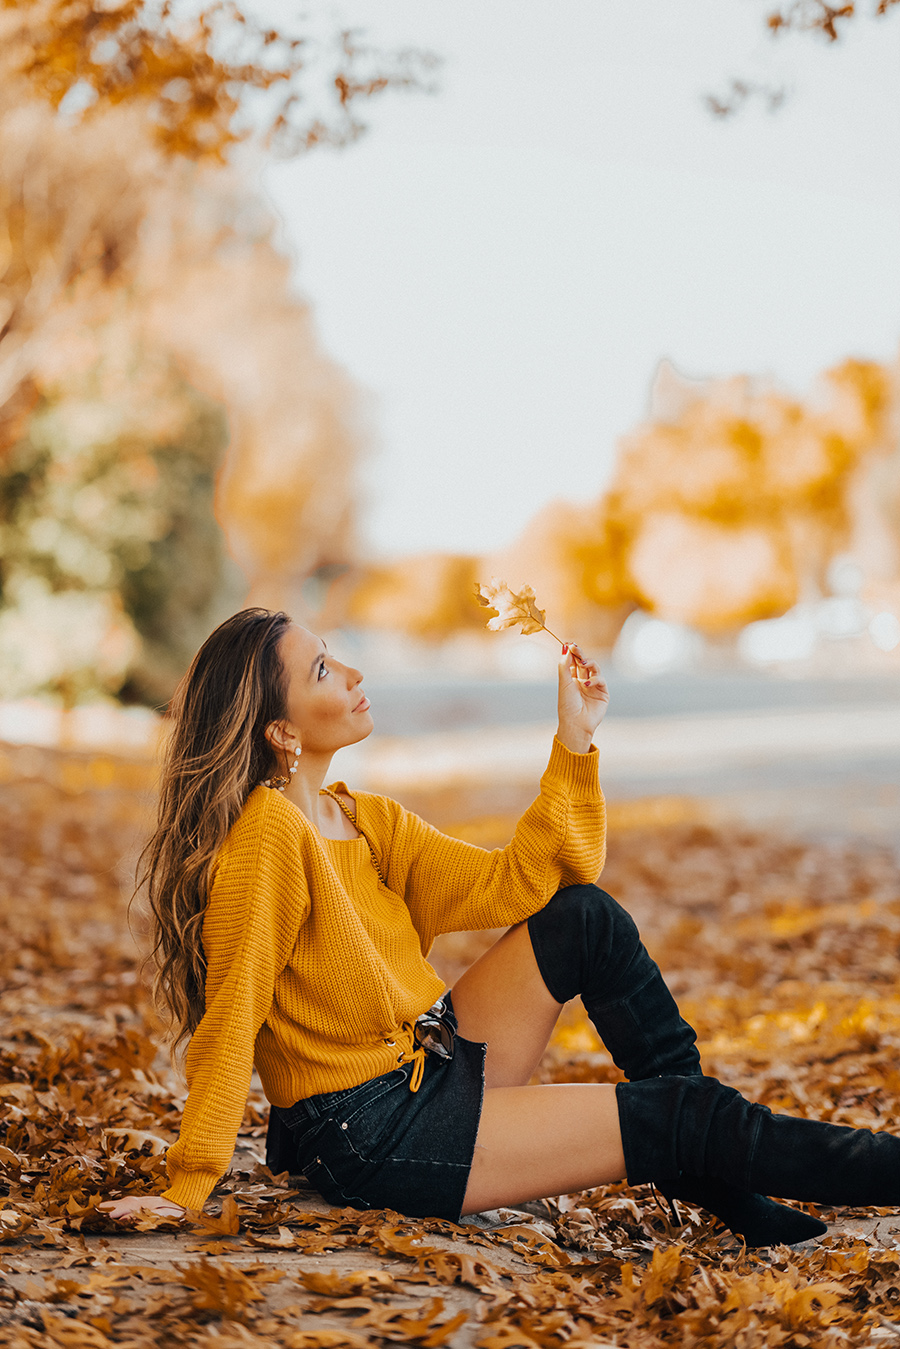 Mustard Outfit in Fall